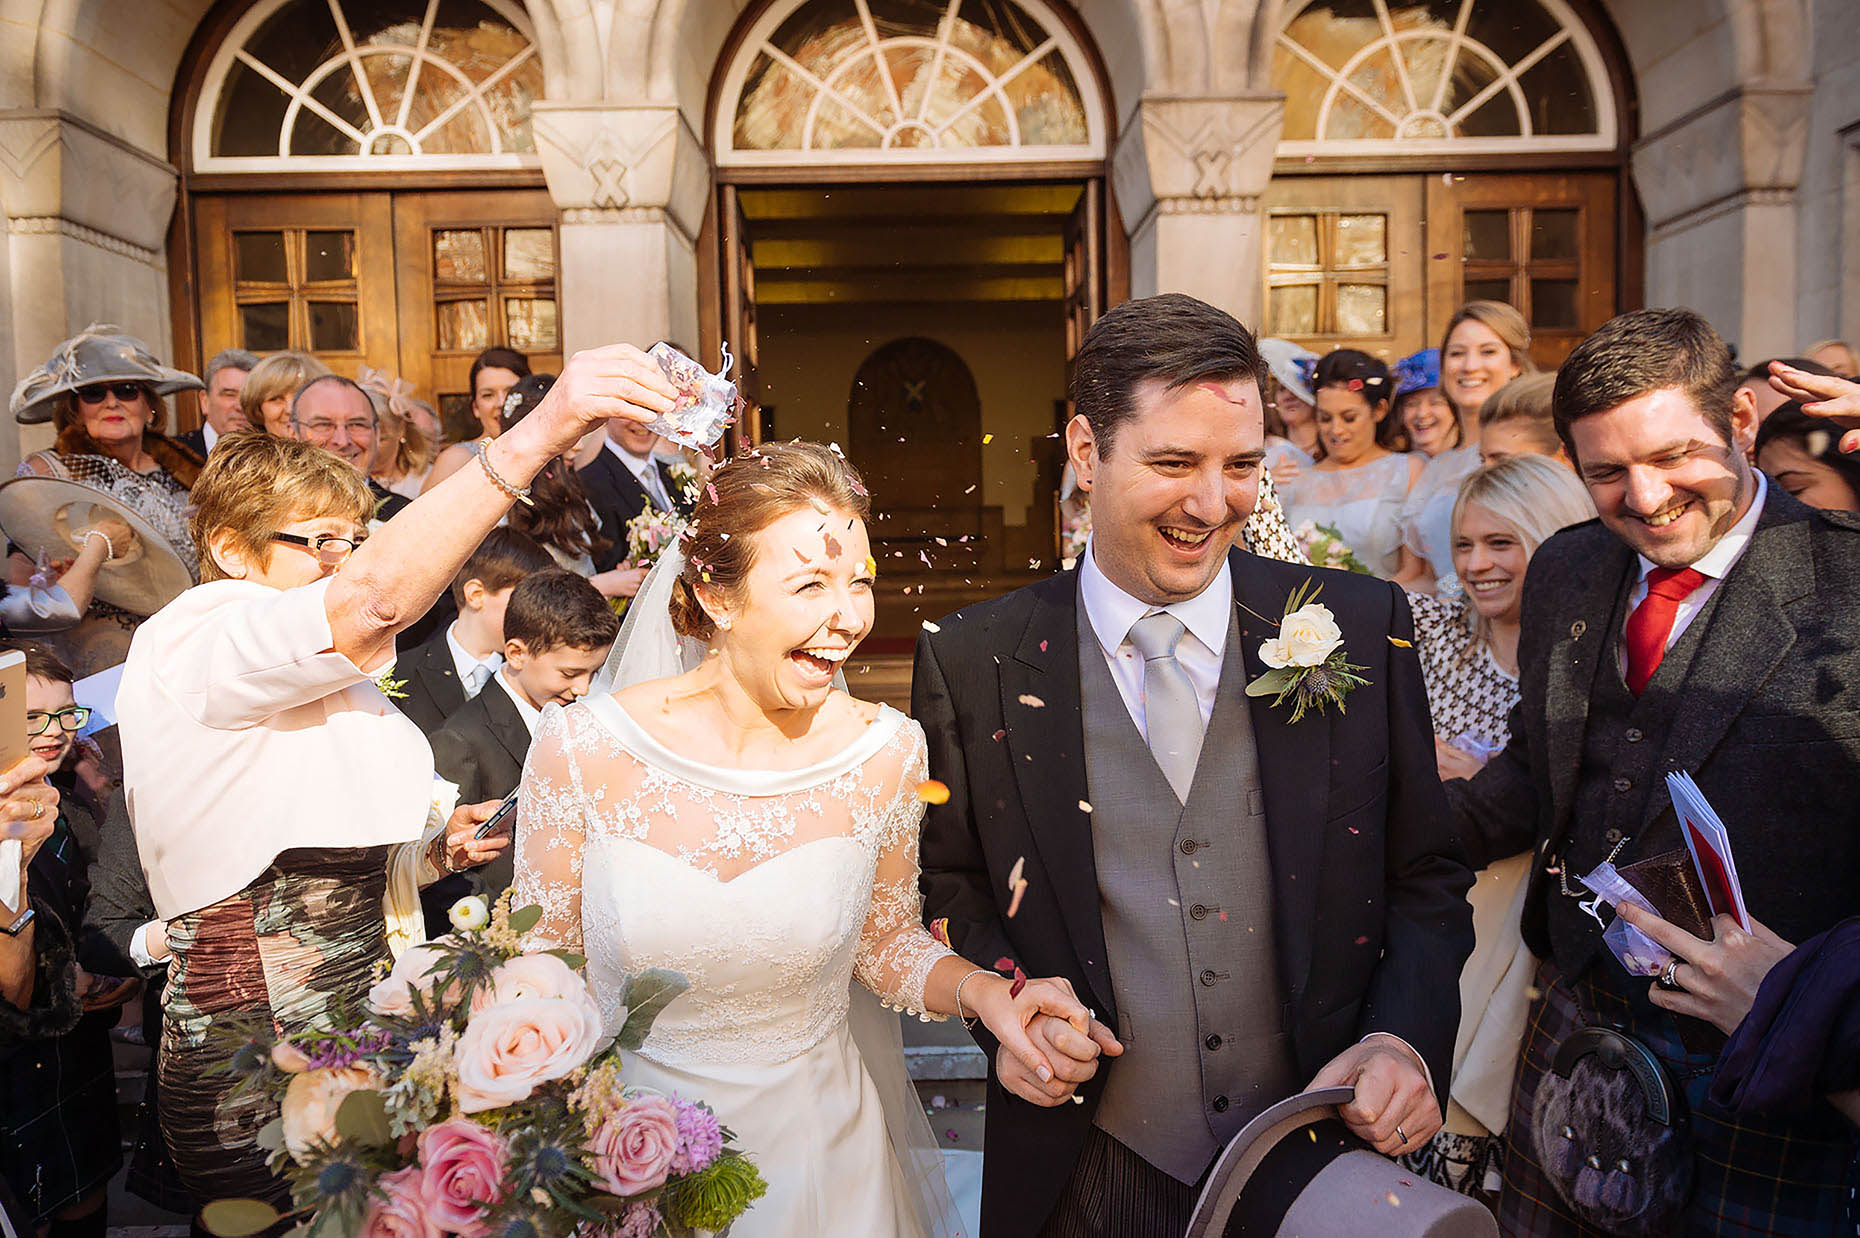 laura-wedding-service-confetti-moment-reportage-photographer-london-mayfair-36